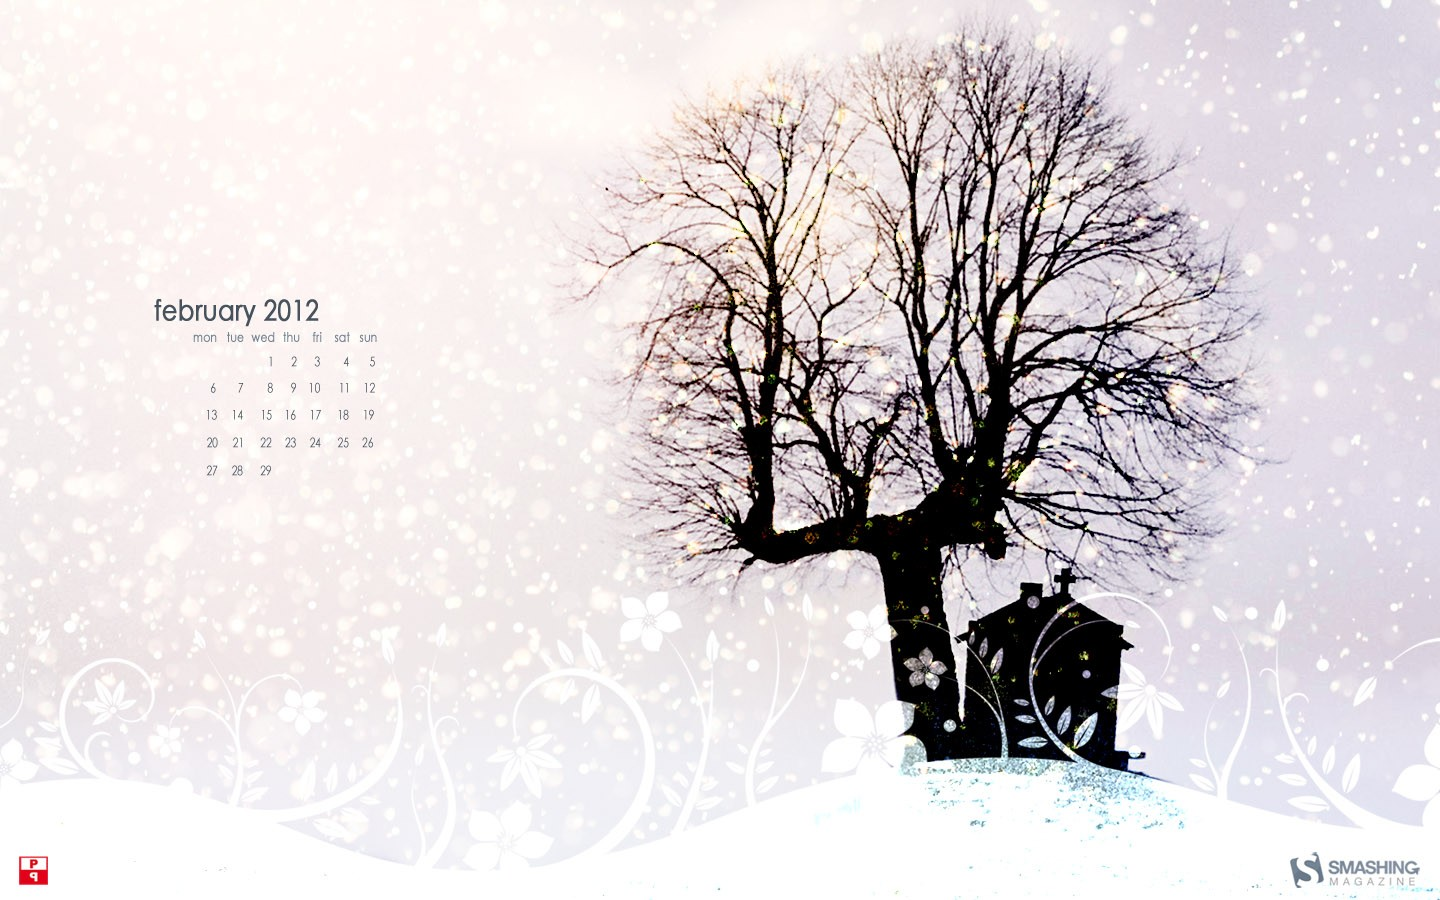 In January Calendar Wallpaper 31380